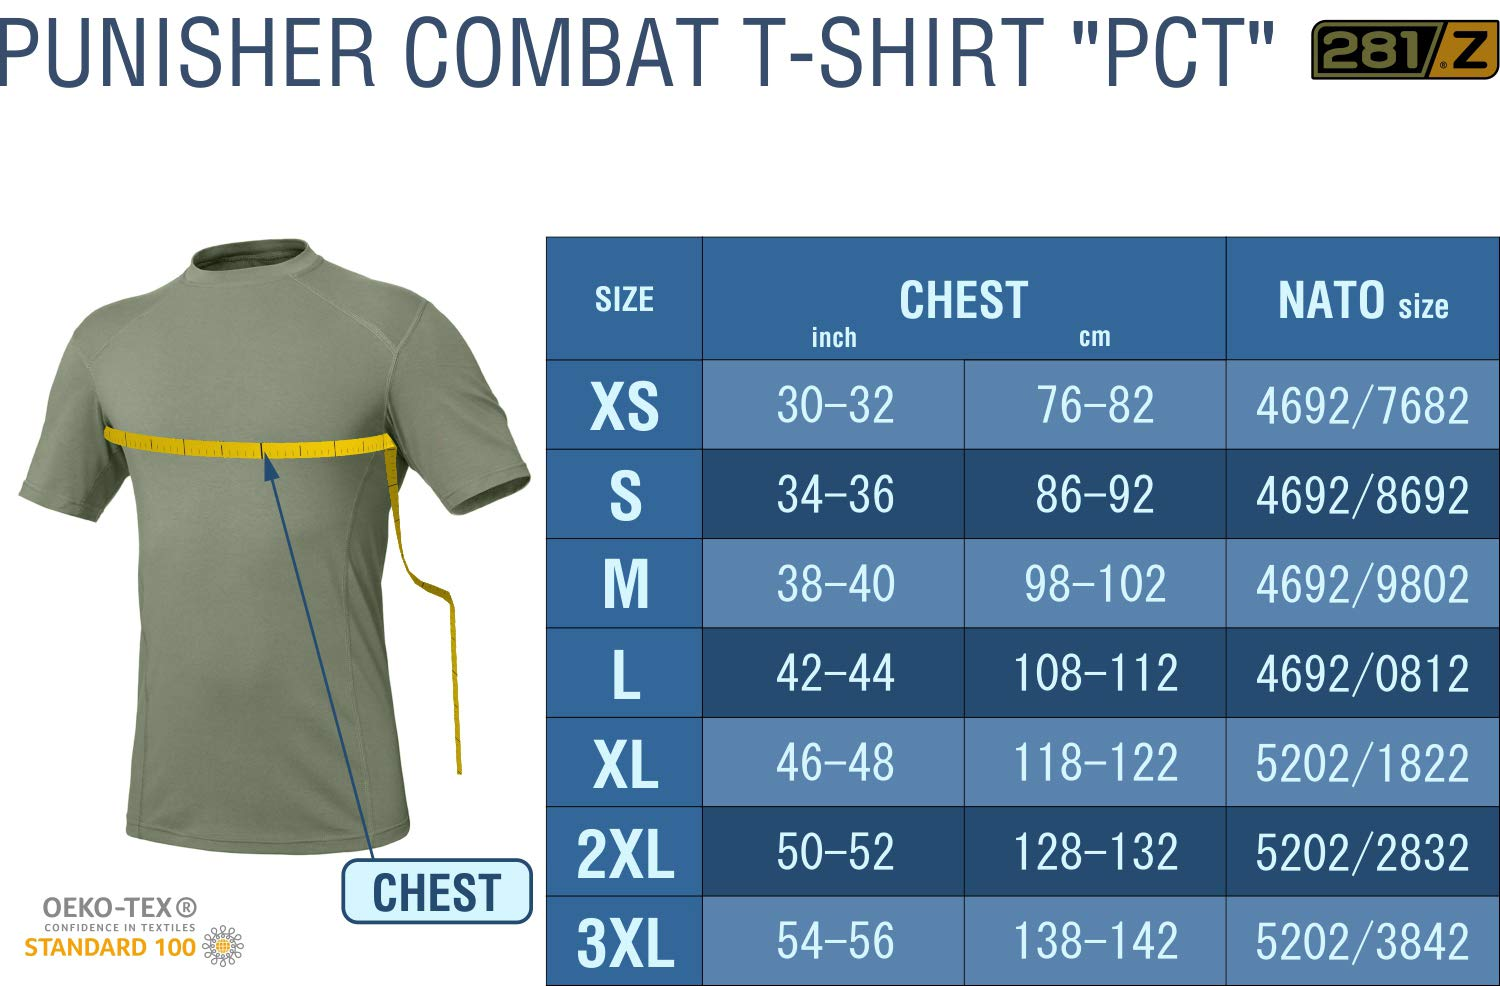 281Z Military Stretch Cotton Underwear T-Shirt - Tactical Hiking Outdoor - Punisher Combat Line (Olive Drab, X-Large) by 281Z (Image #6)